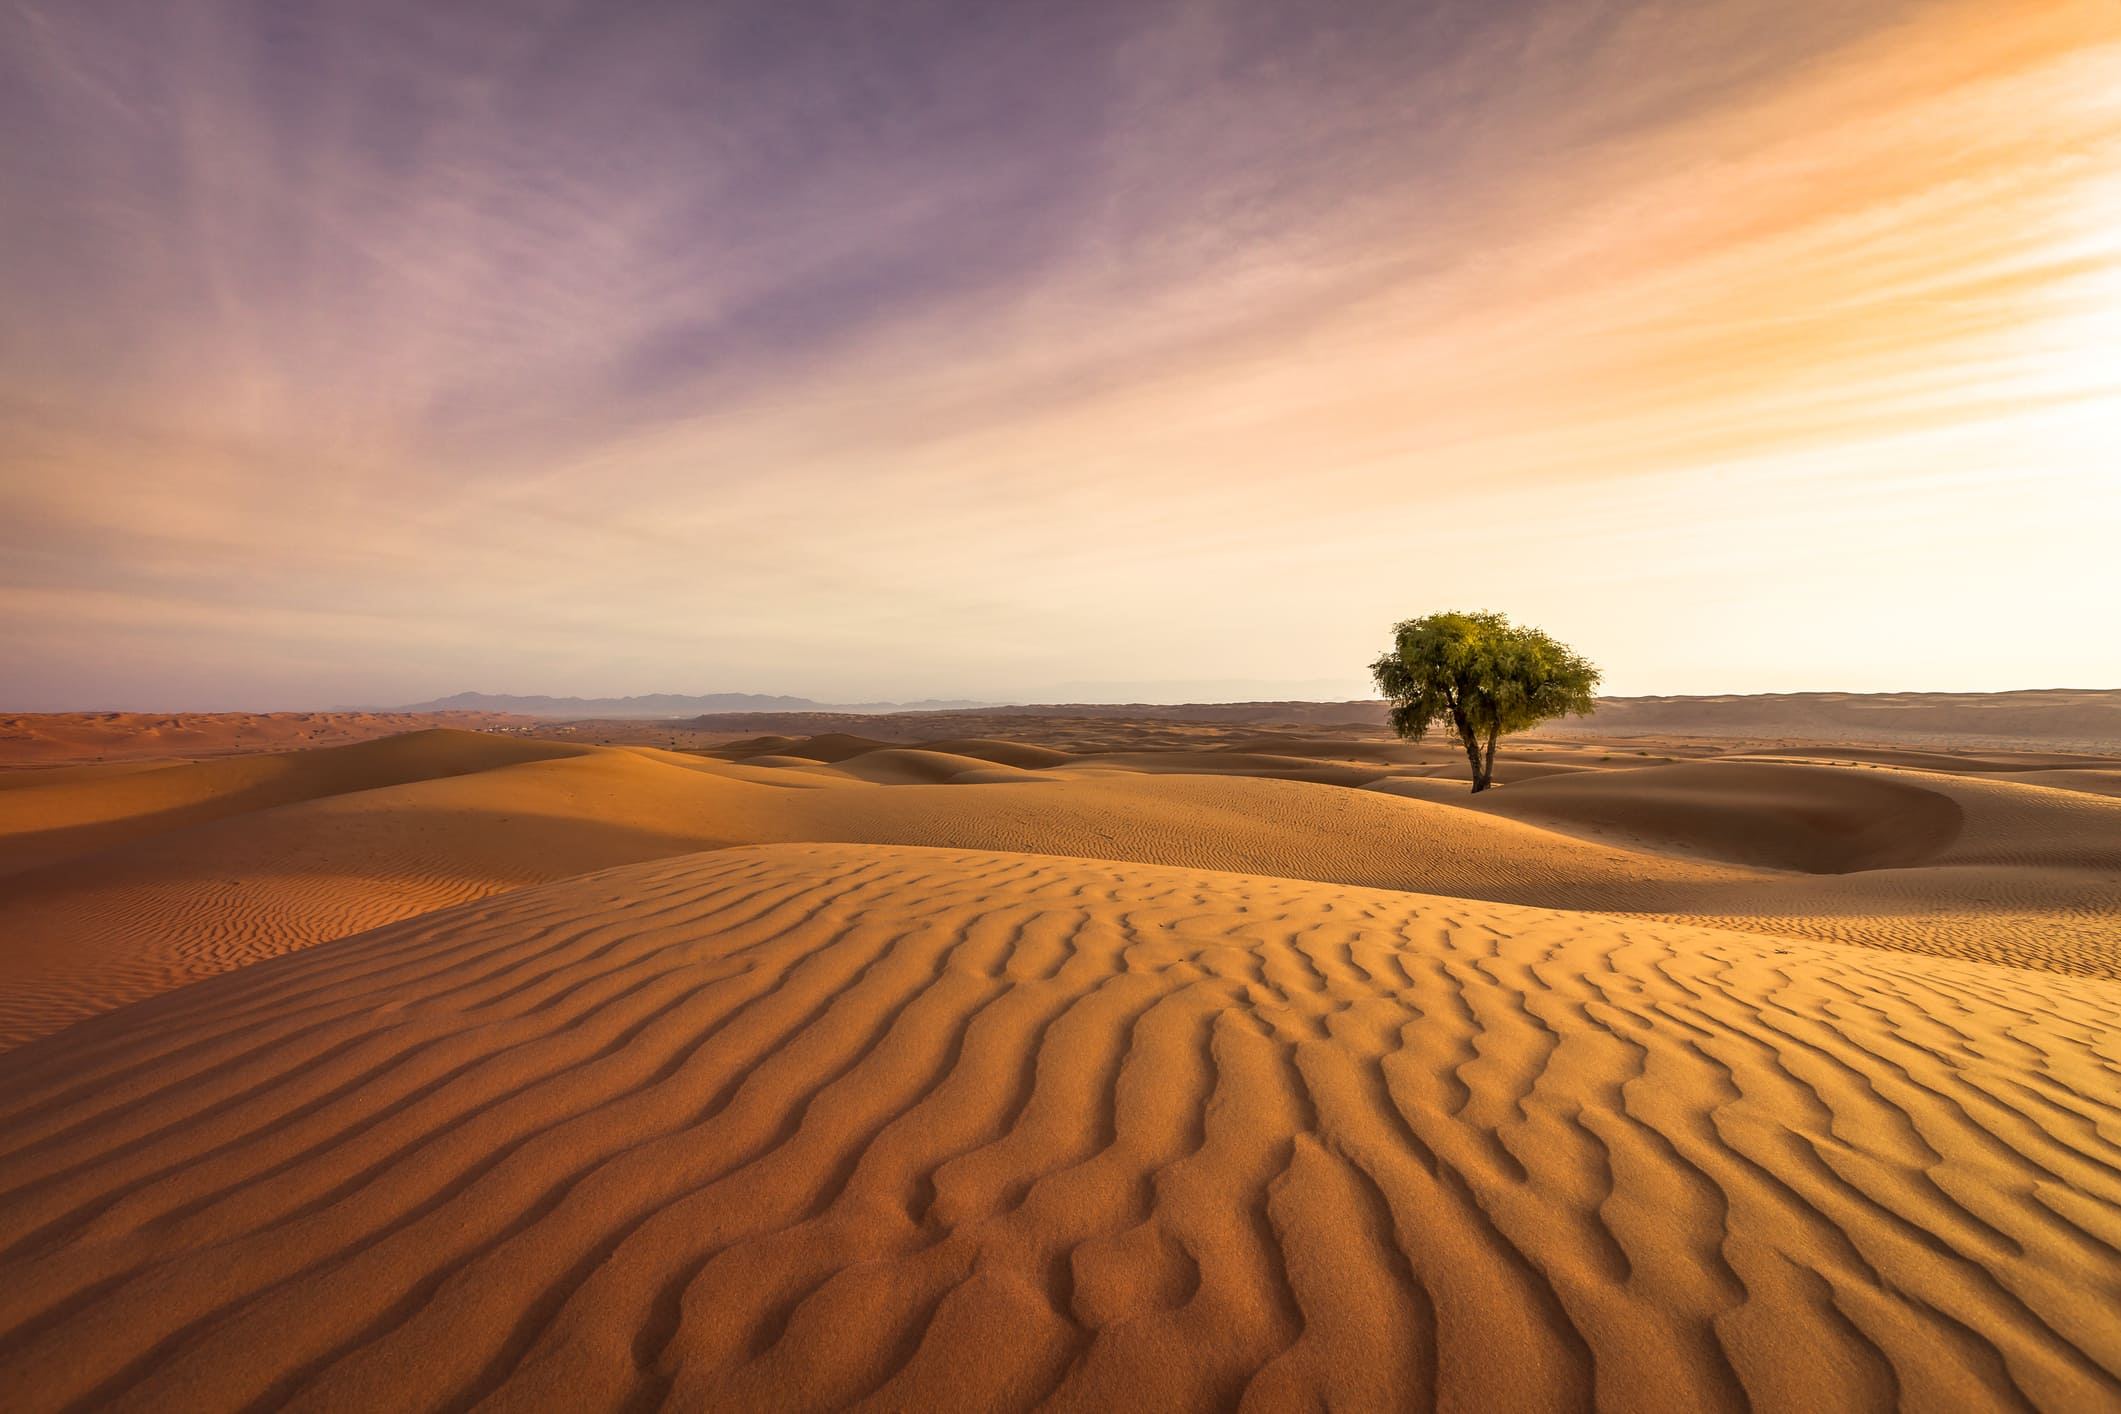 How to Use Negative Space in Landscape Photography